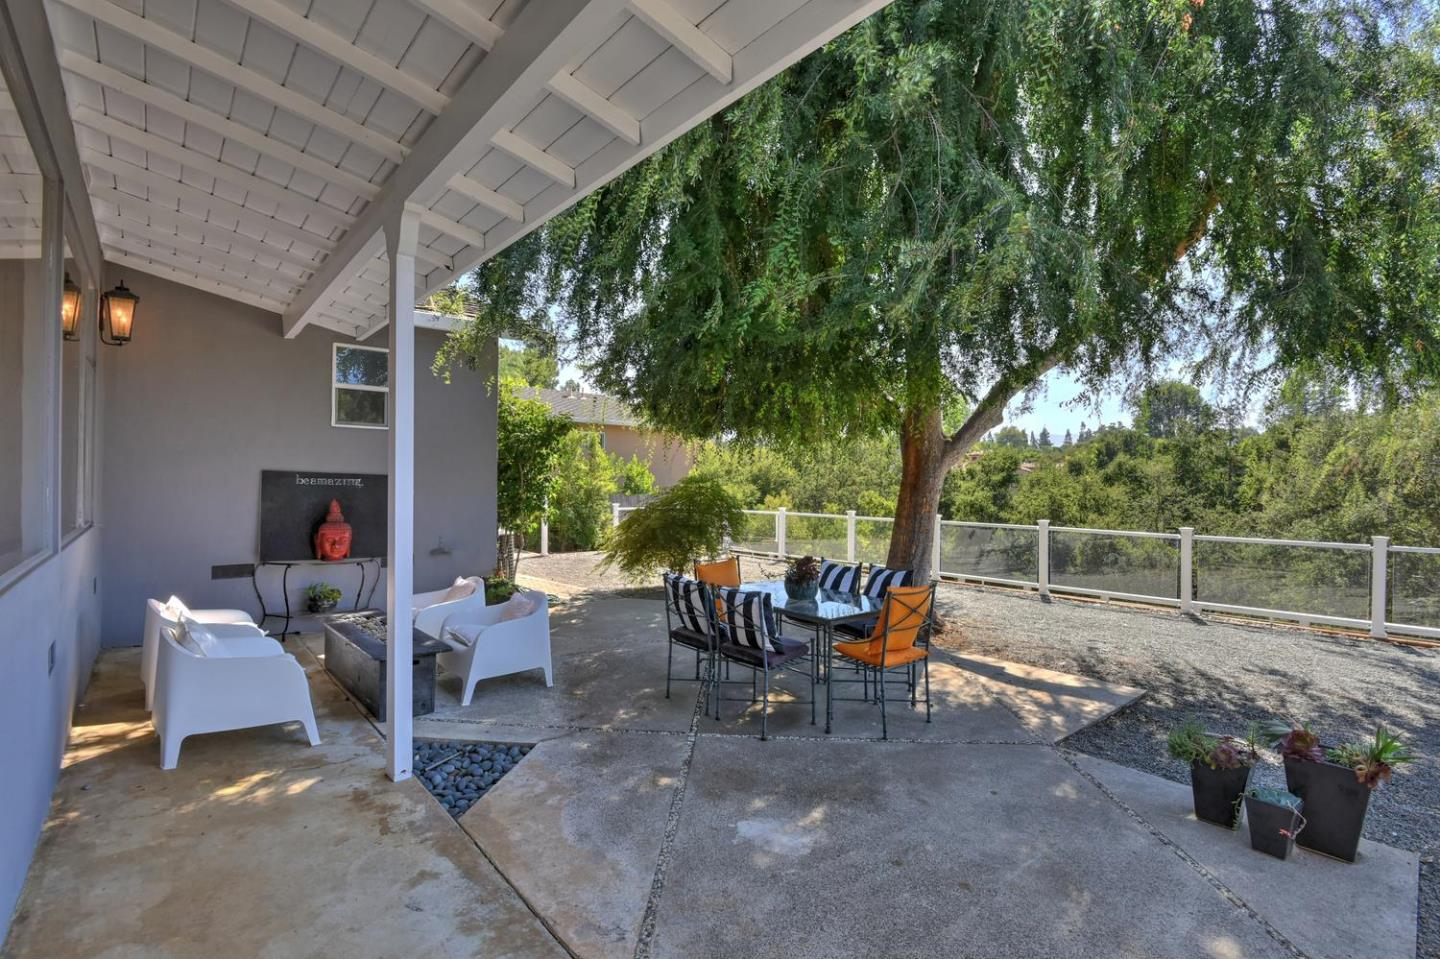 Additional photo for property listing at 14731 Golf Links Drive  Los Gatos, Калифорния 95032 Соединенные Штаты